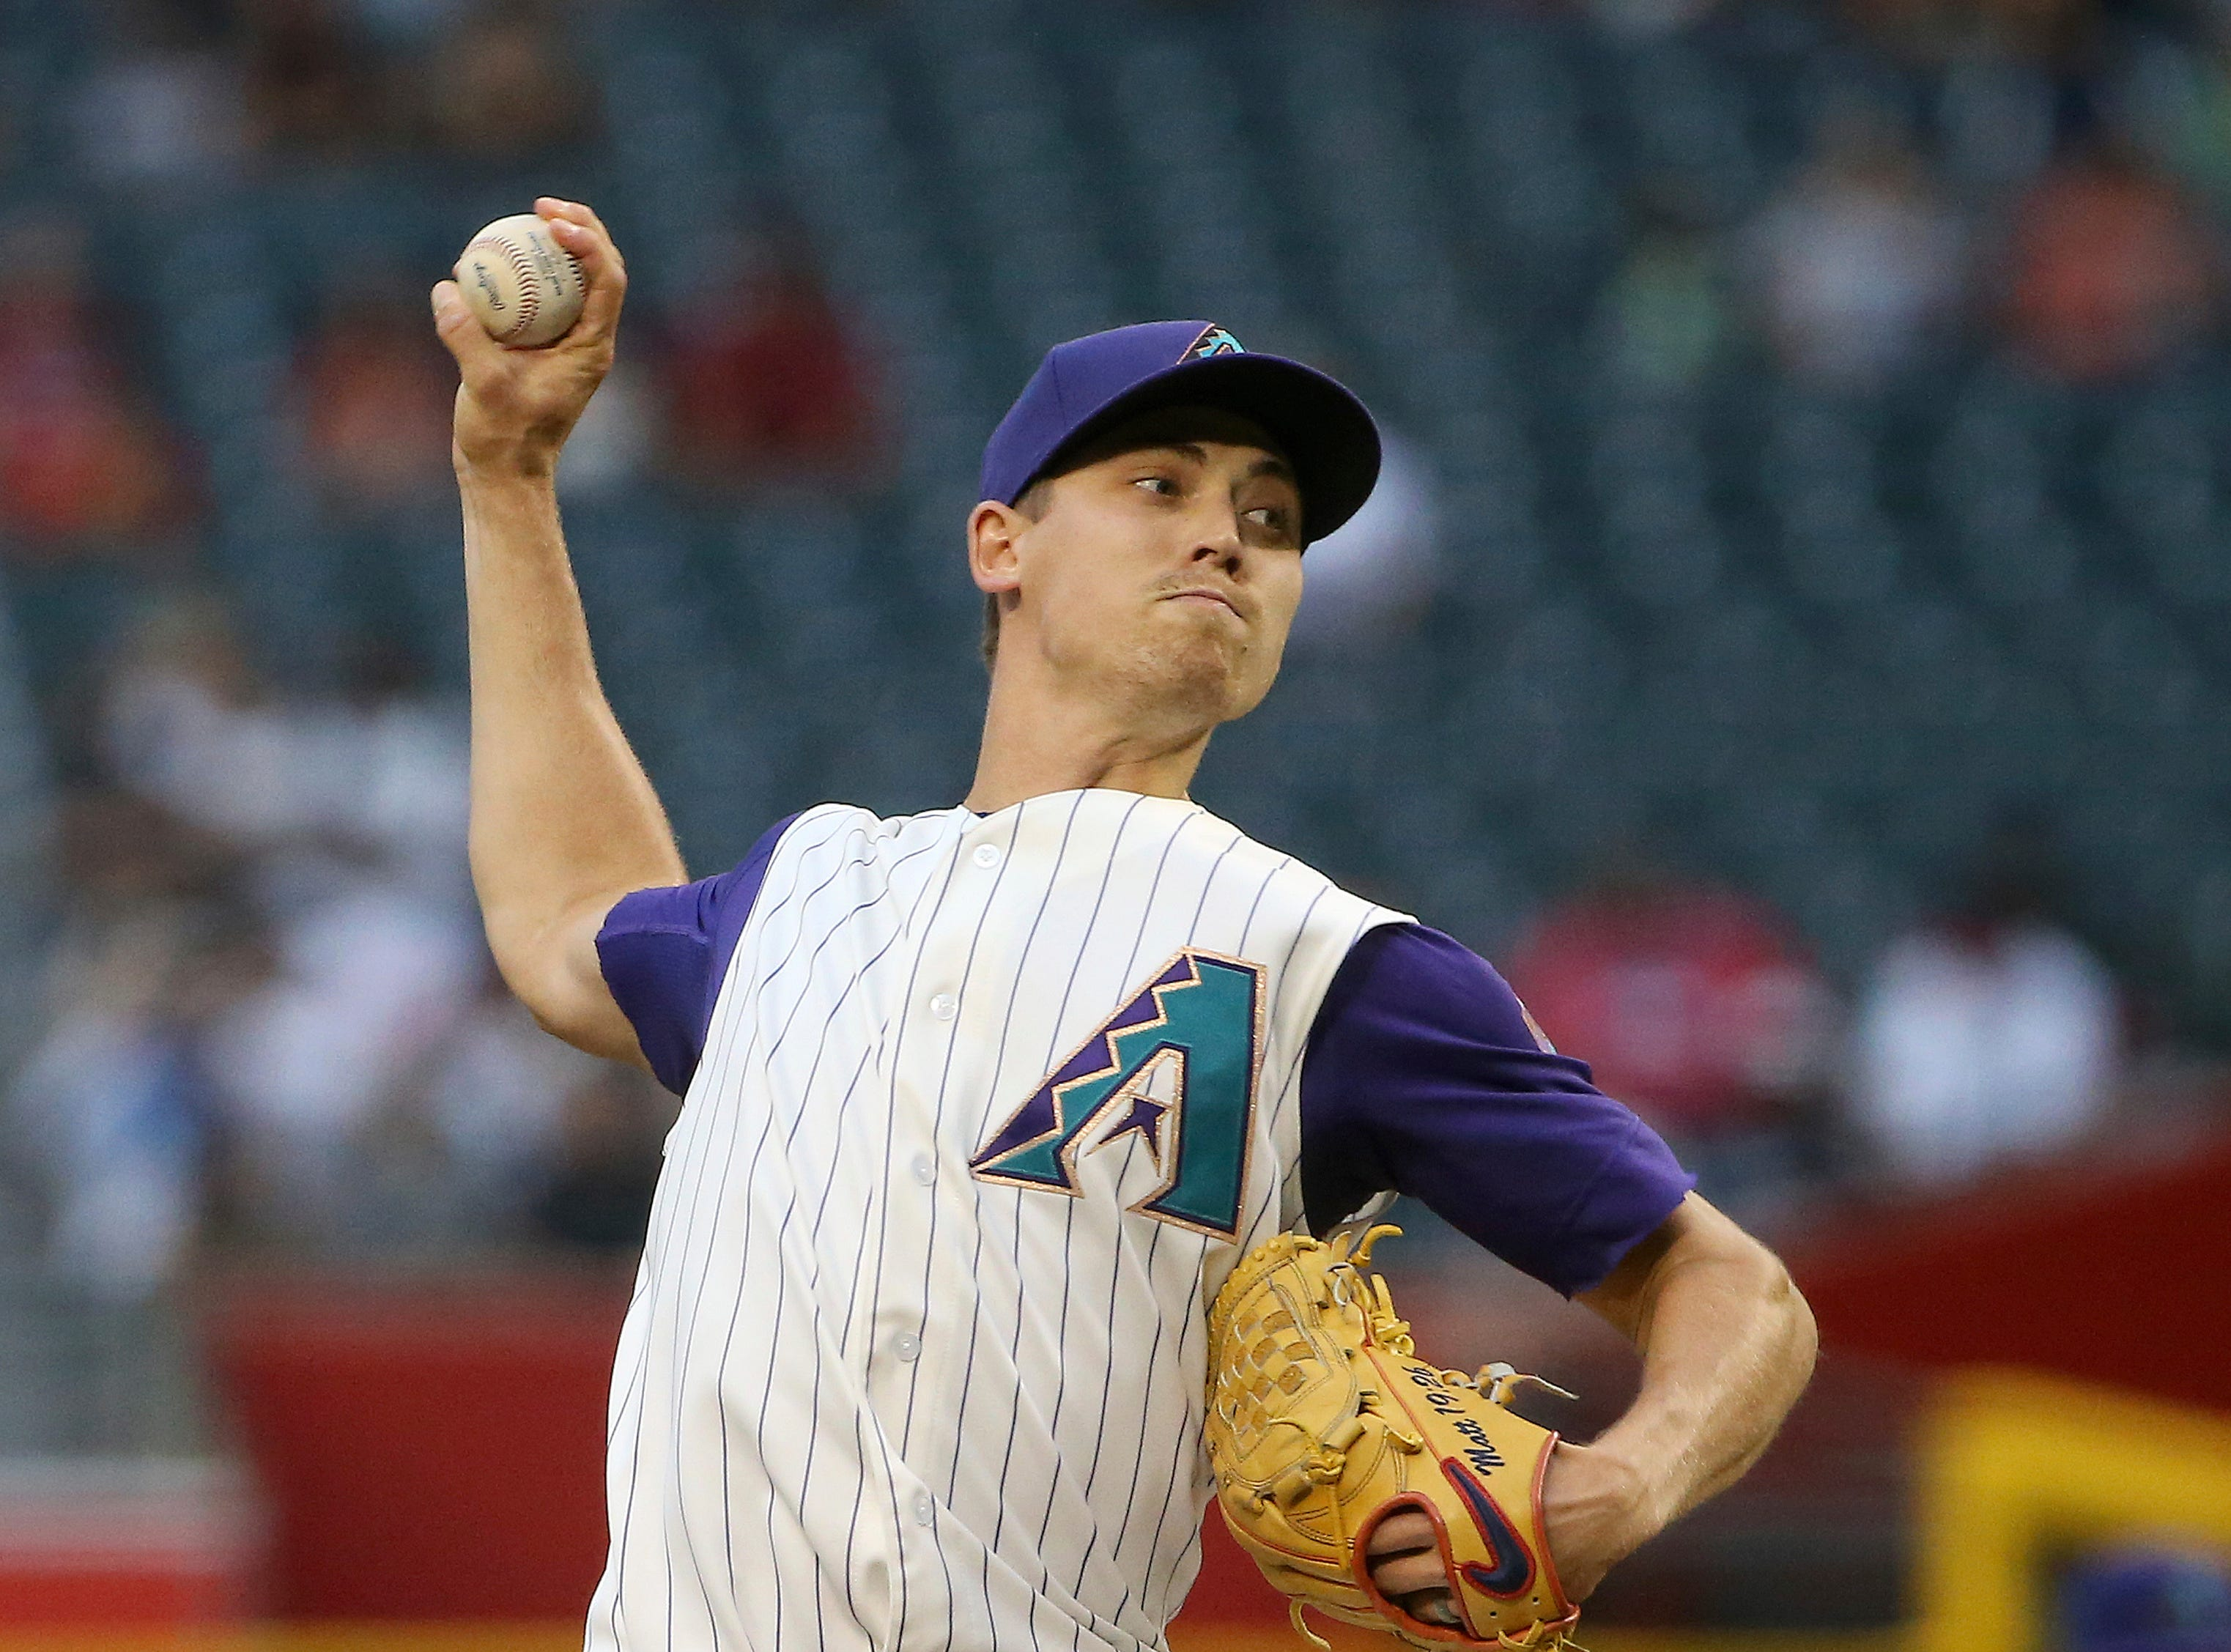 Arizona Diamondbacks starting pitcher Luke Weaver throws a pitch against the Atlanta Braves during the first inning of a baseball game Thursday, May 9, 2019, in Phoenix. (AP Photo/Ross D. Franklin)